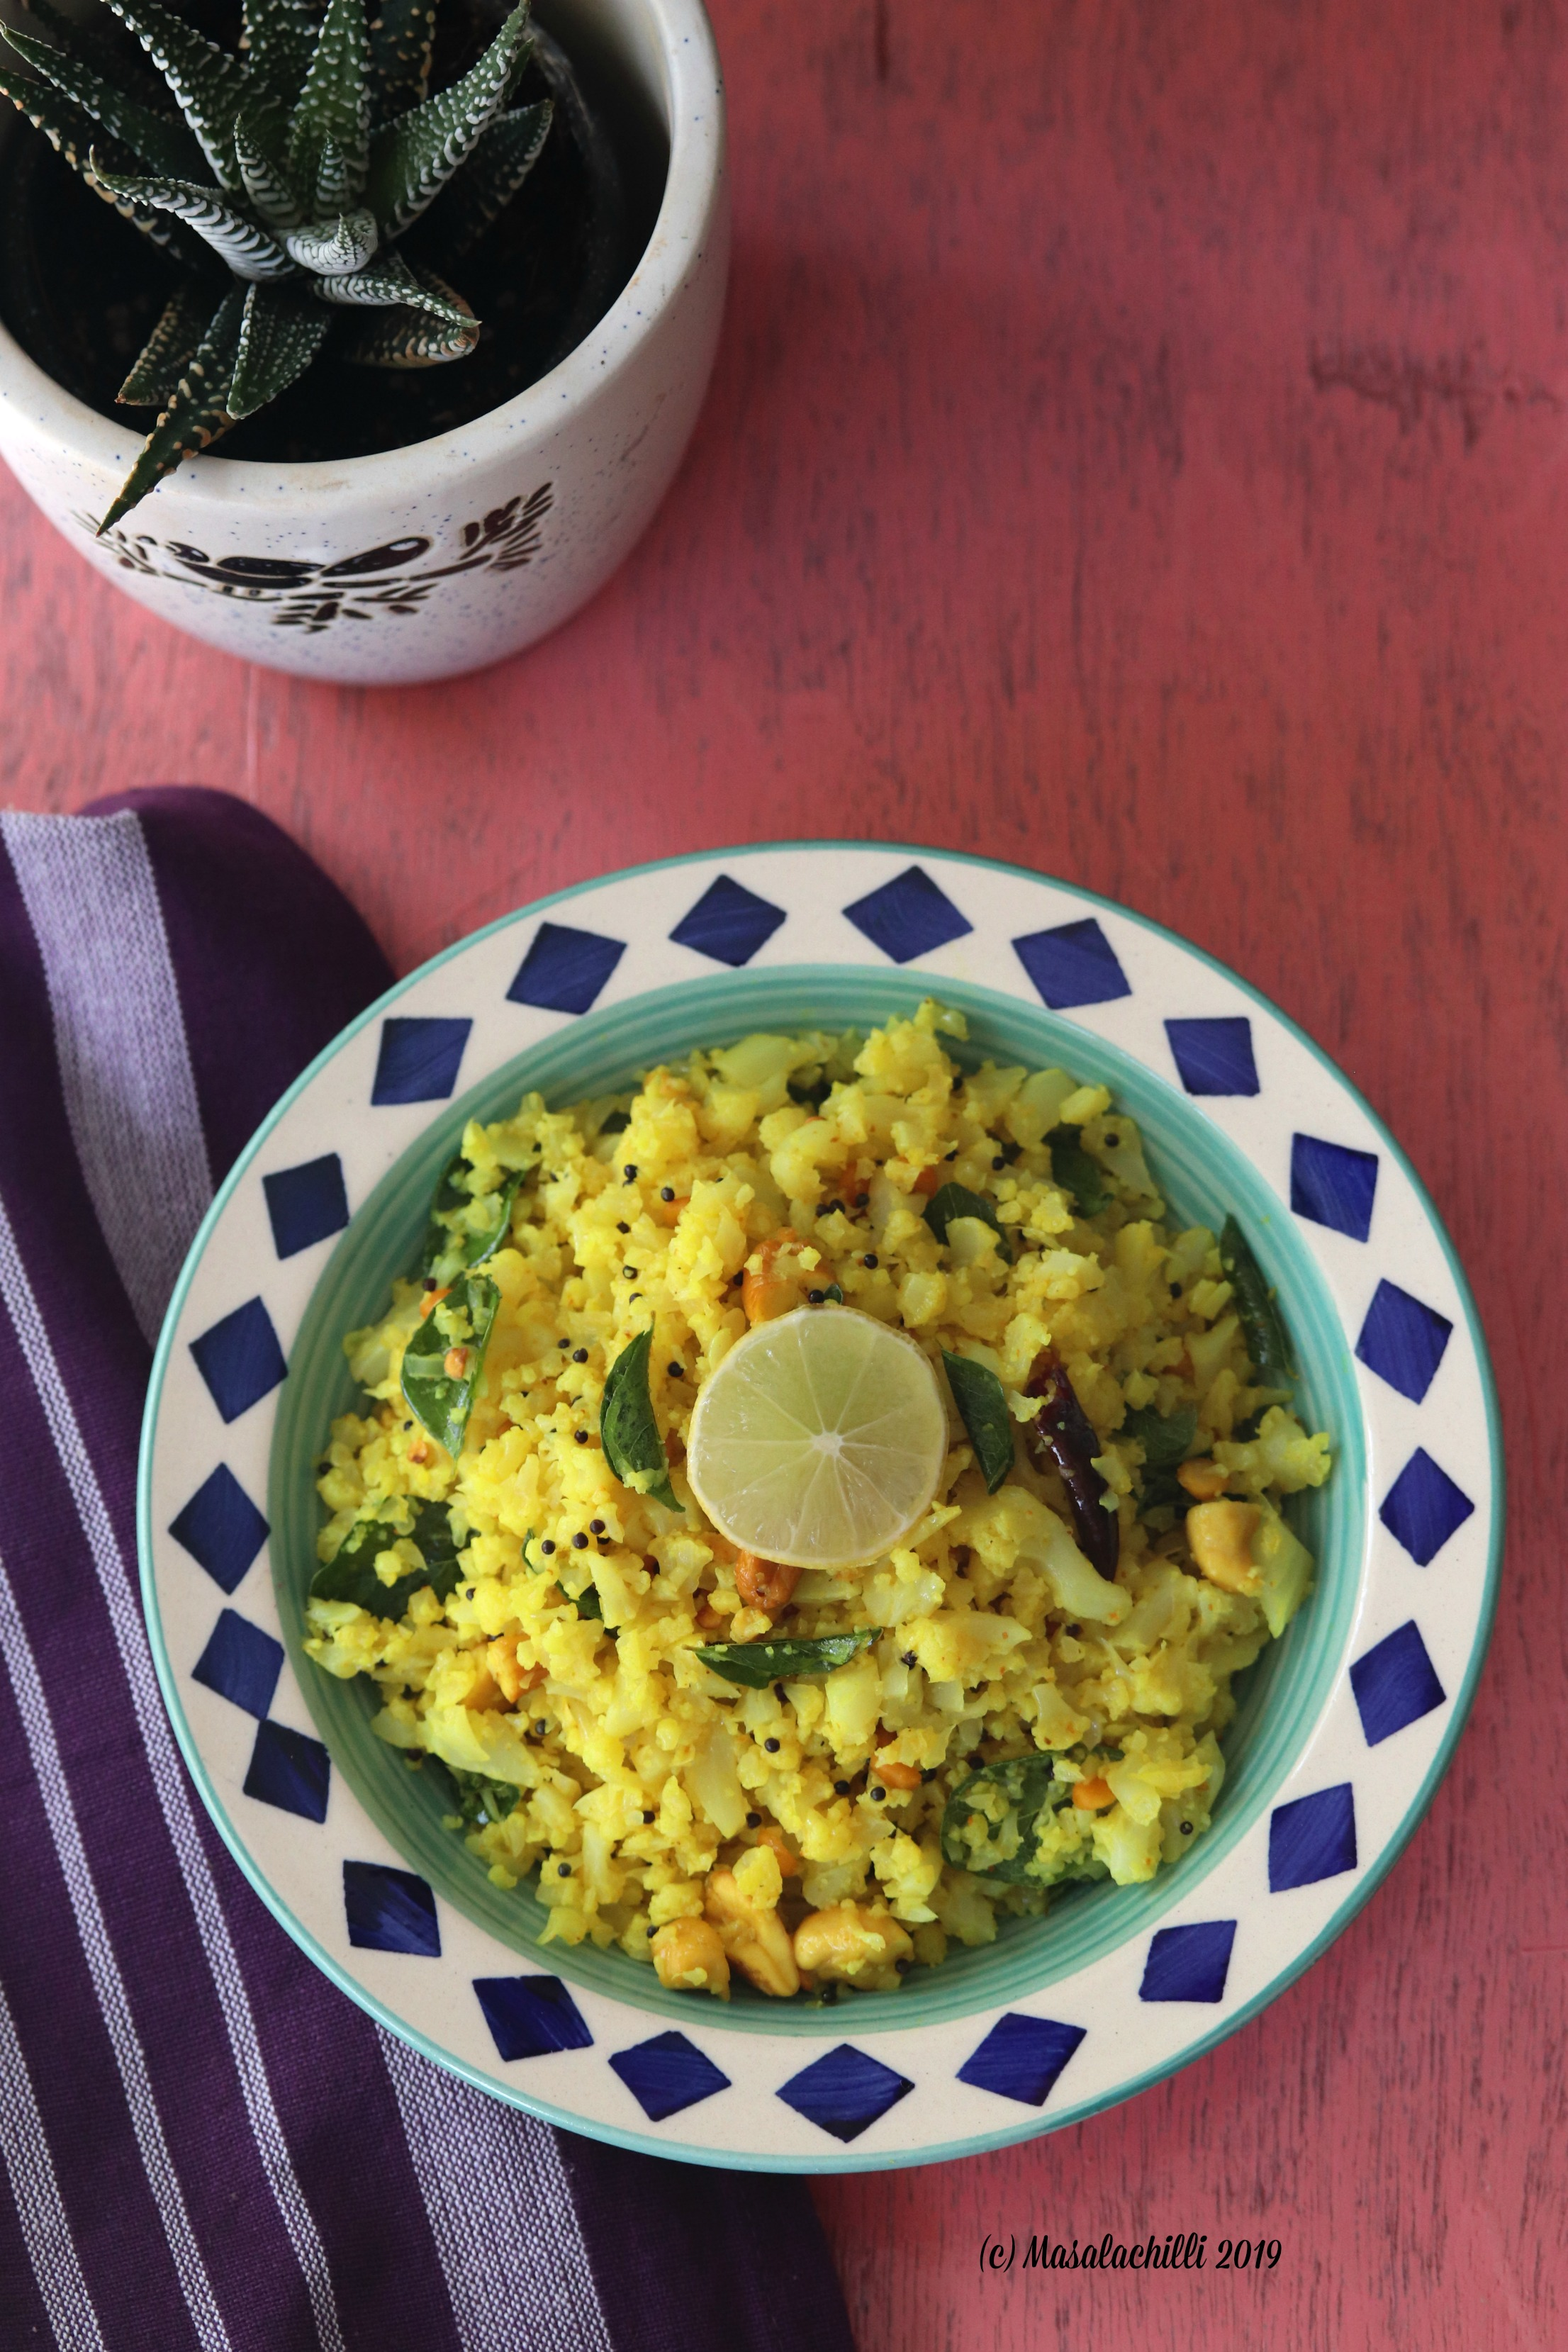 Gluten free, diabetic recipe lunch or dinner meal Cauliflower Rice recipe made under 30 minutes